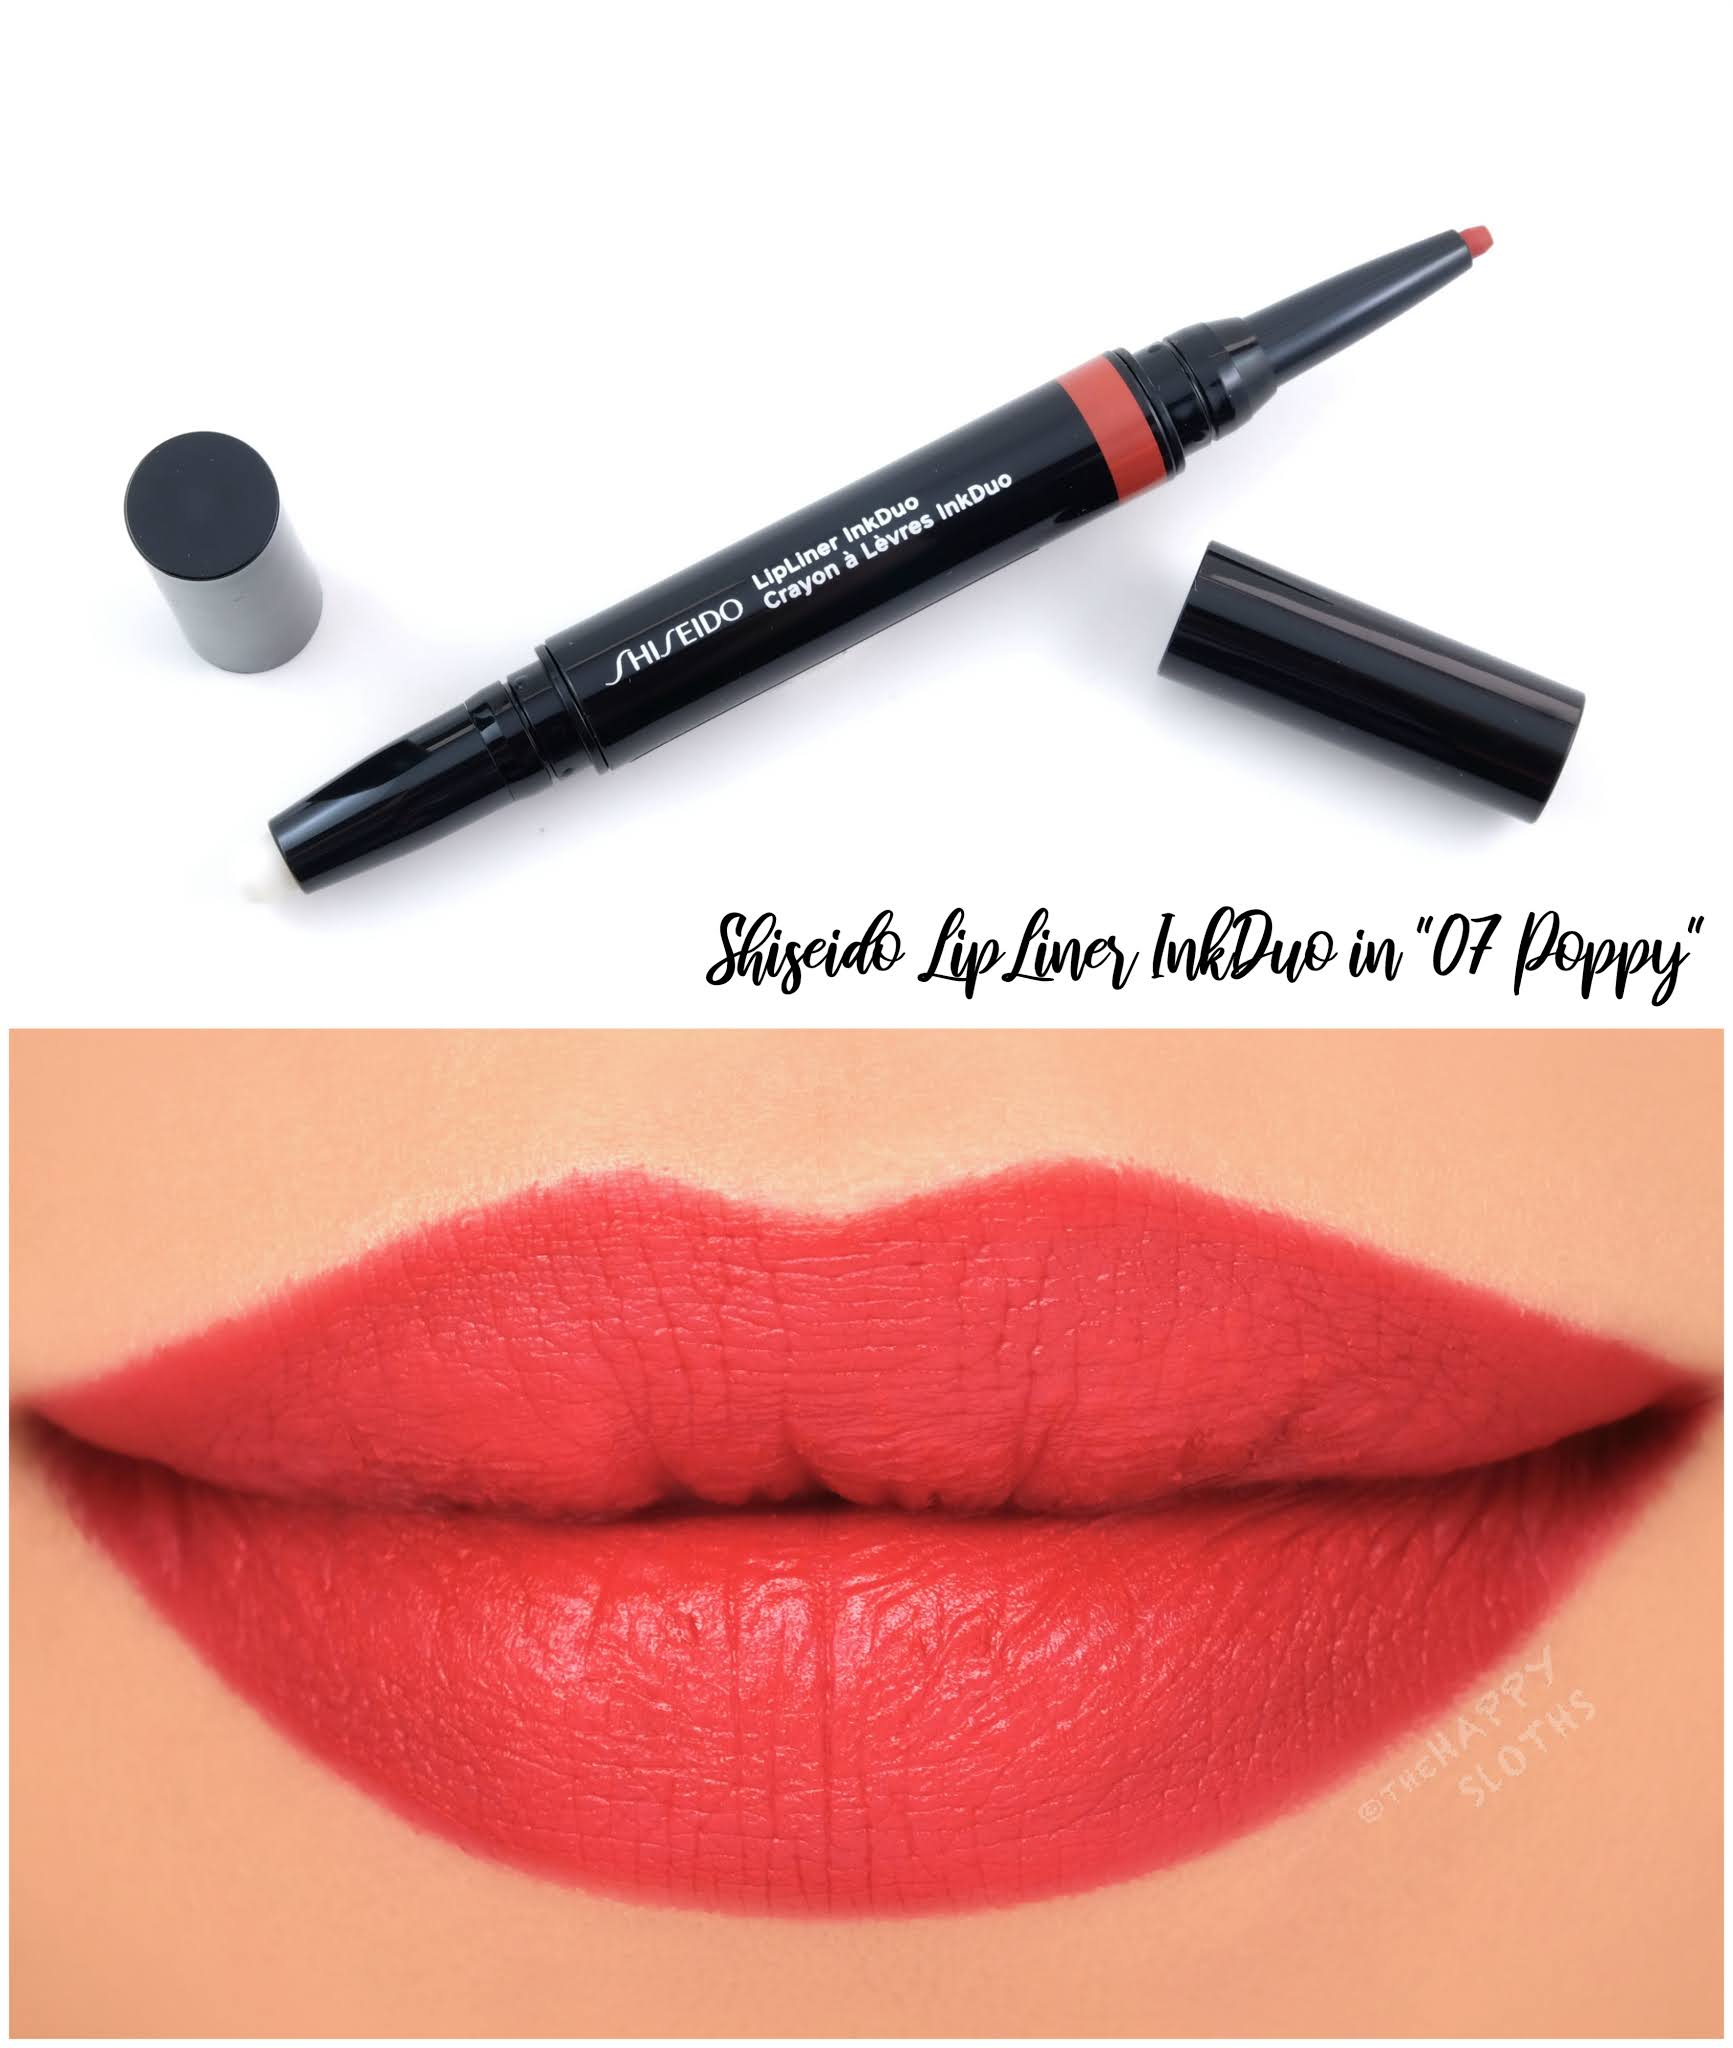 "Shiseido | LipLiner InkDuo in ""07 Poppy"": Review and Swatches"